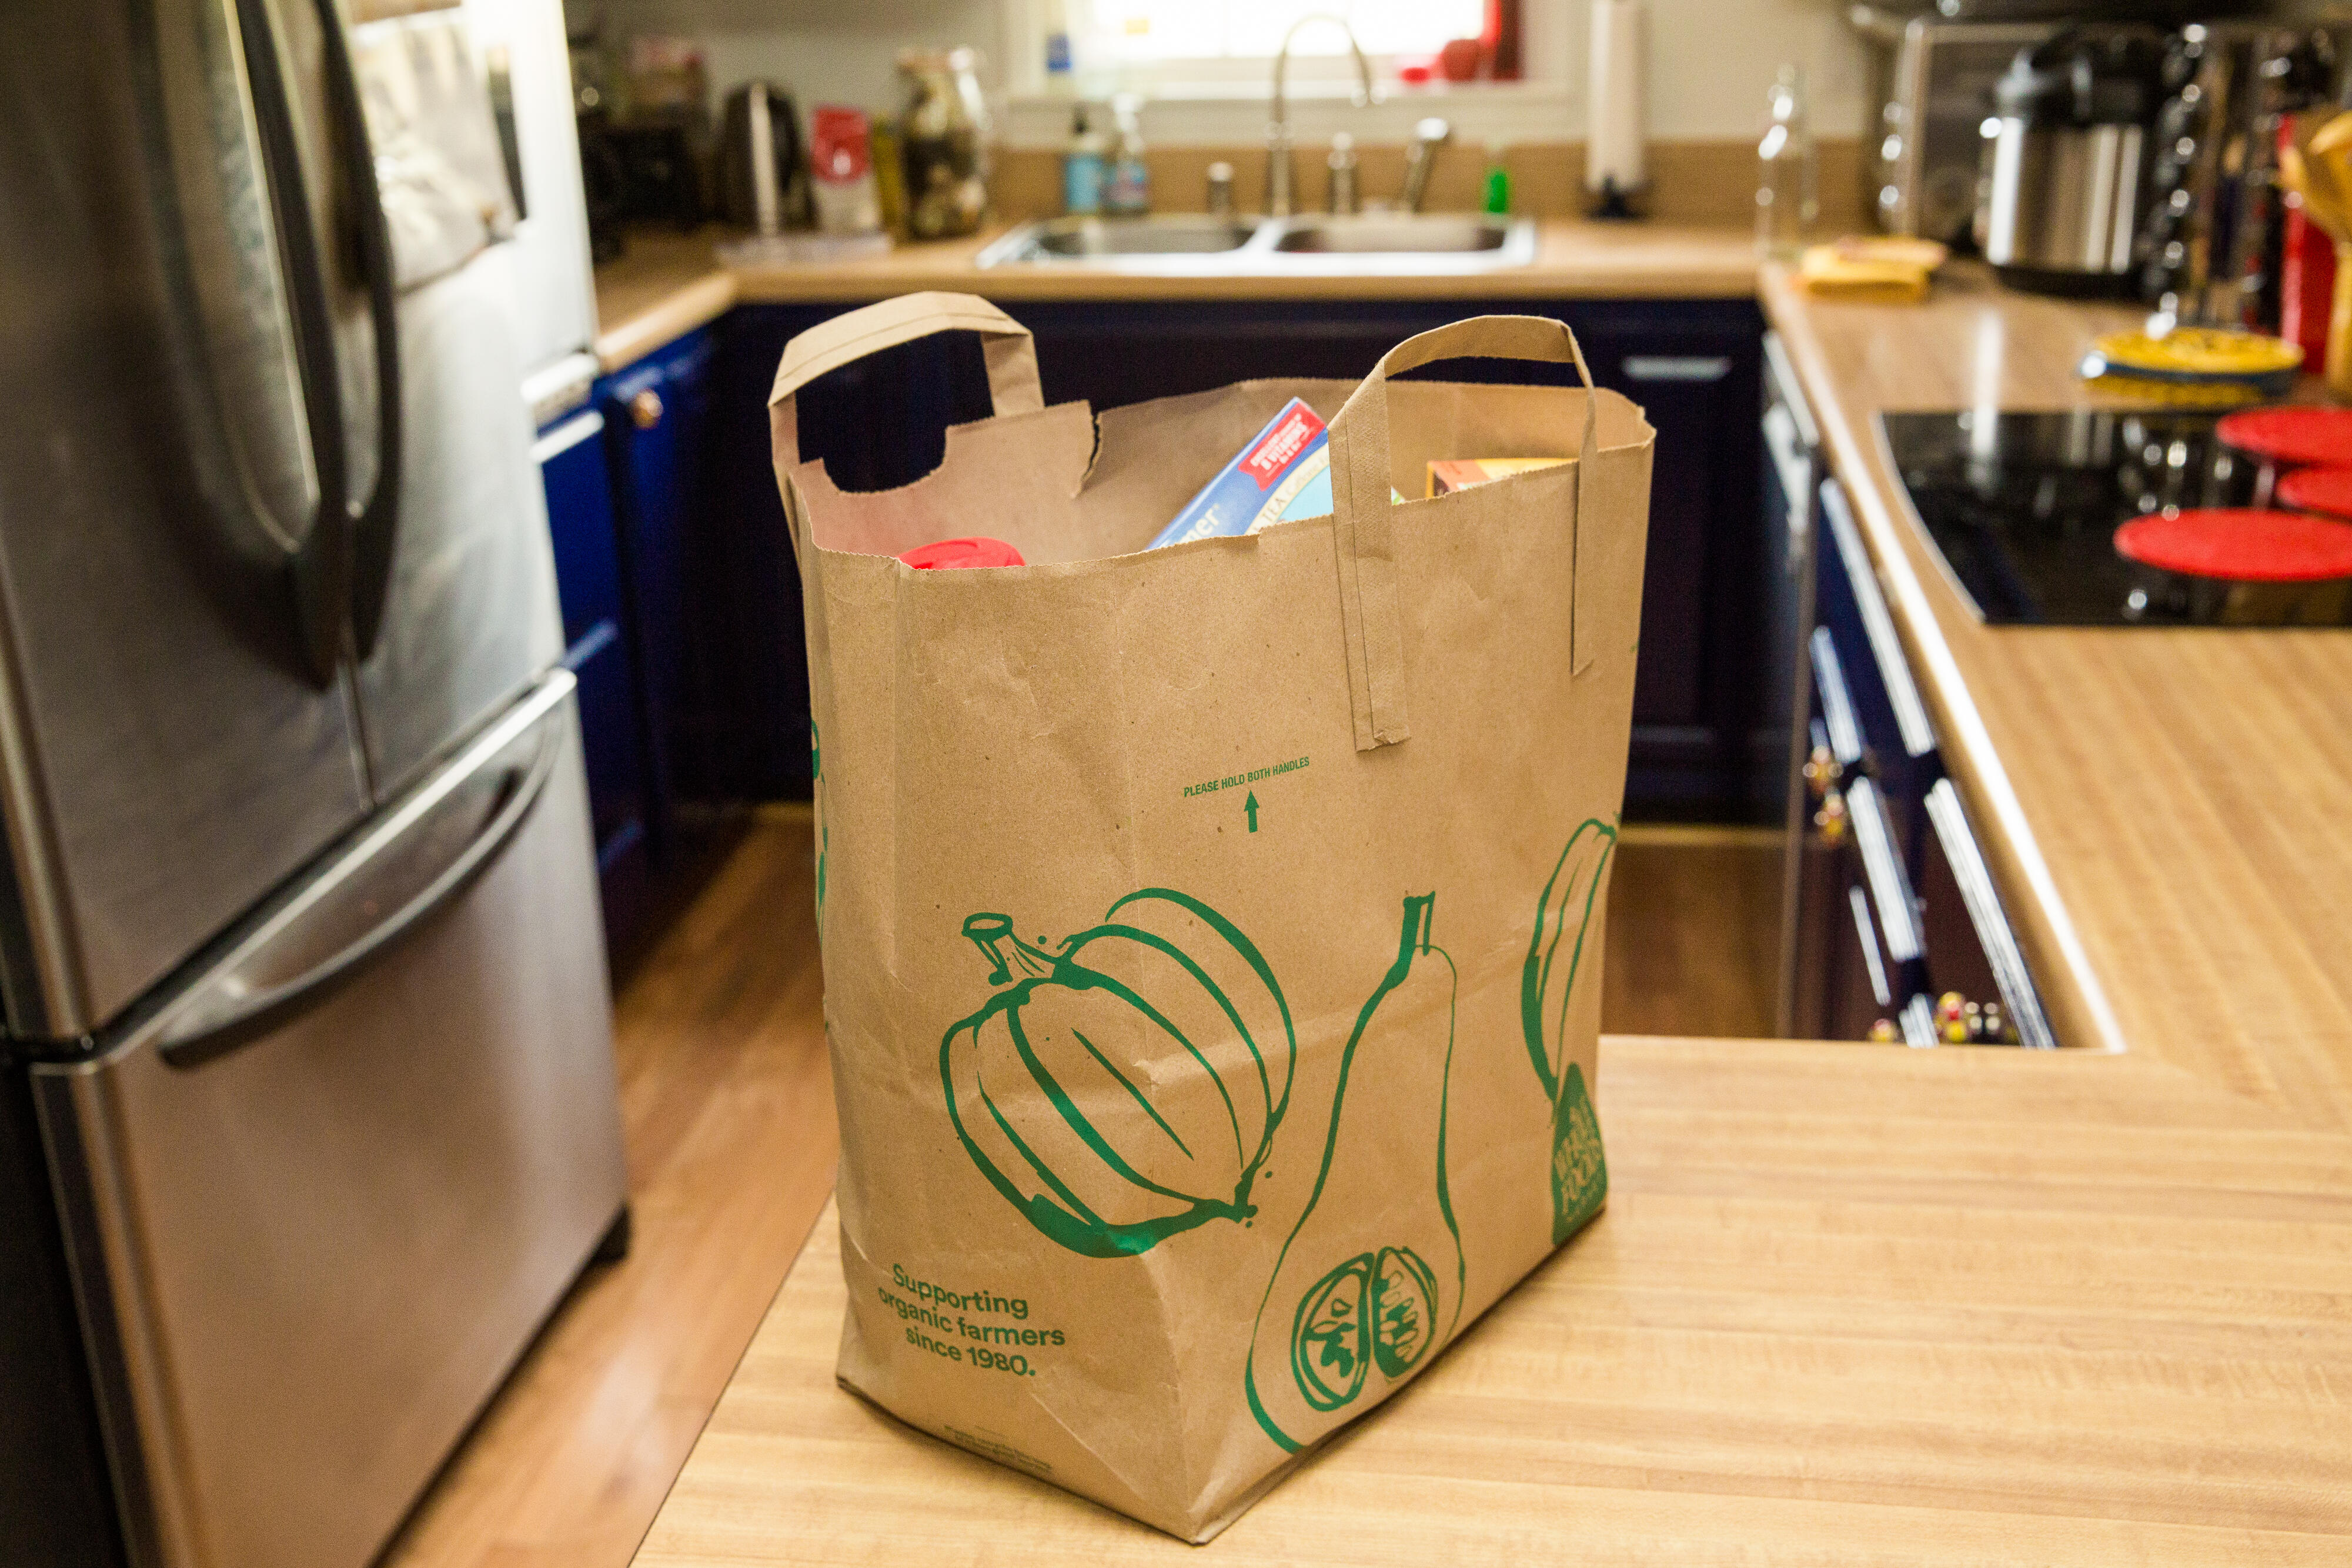 04-bag-of-groceries-at-home-whole-foods-paper